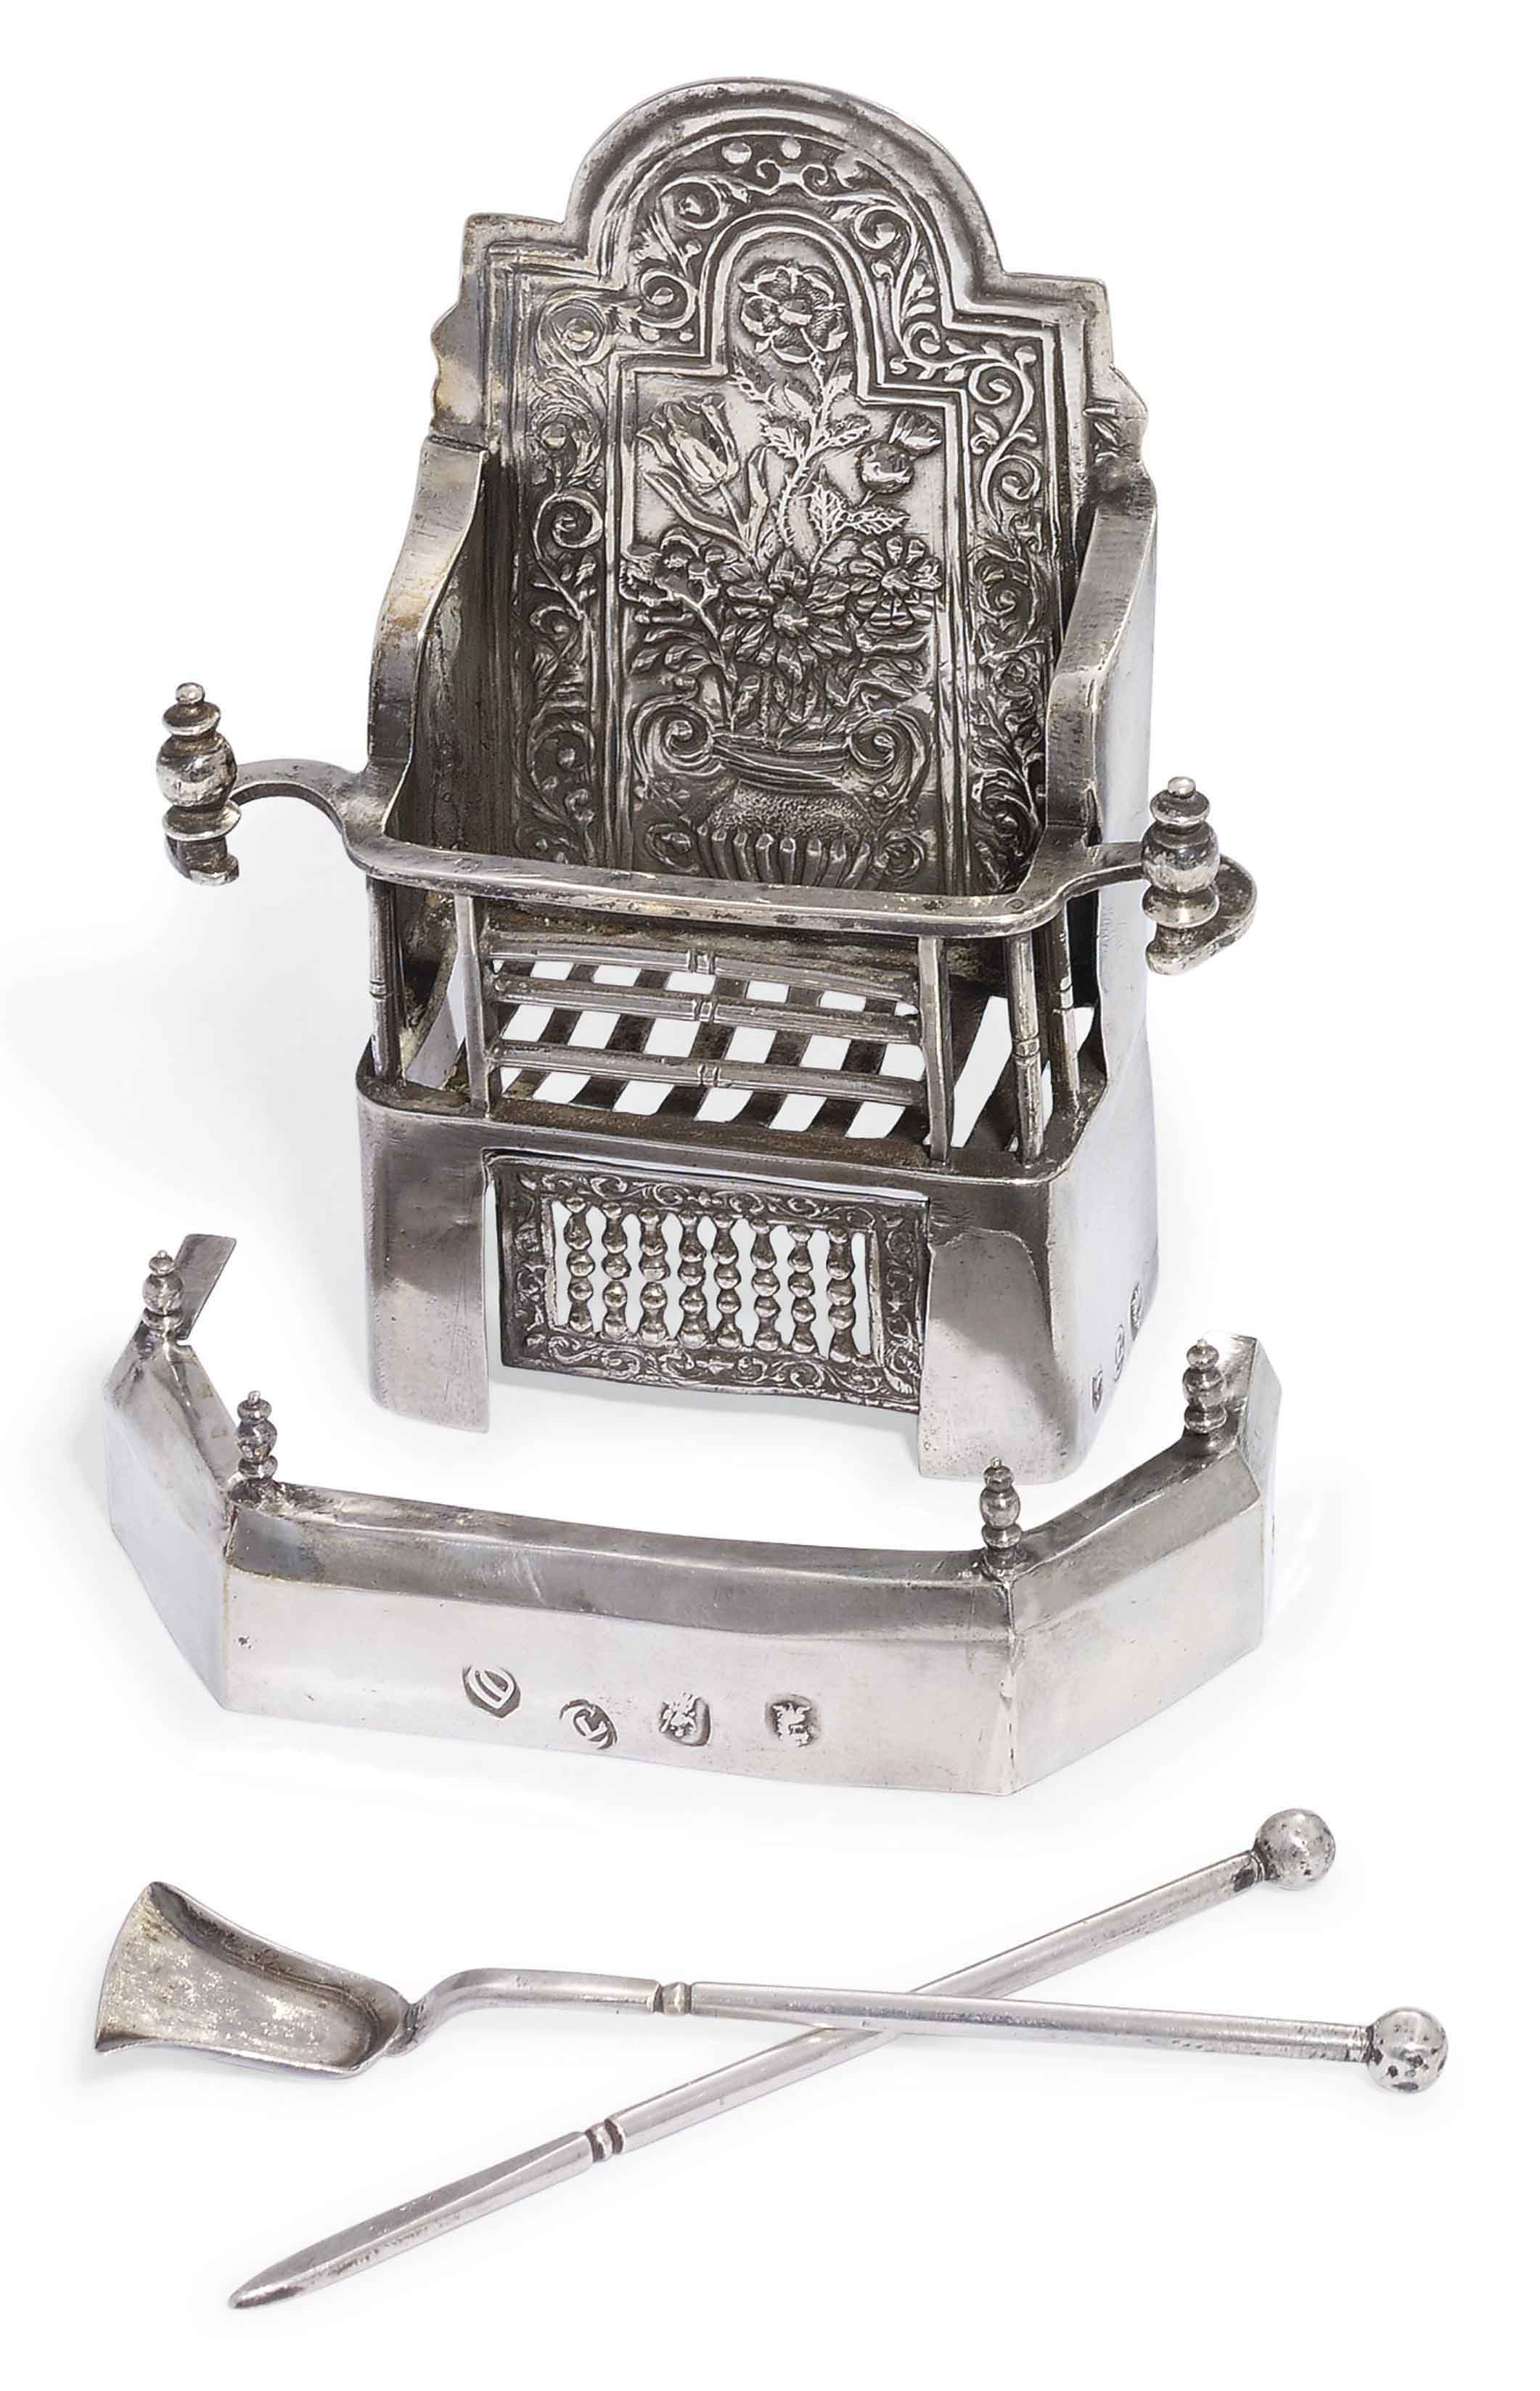 A RARE QUEEN ANNE SILVER MINIATURE TOY FIRE-GRATE AND FENDER